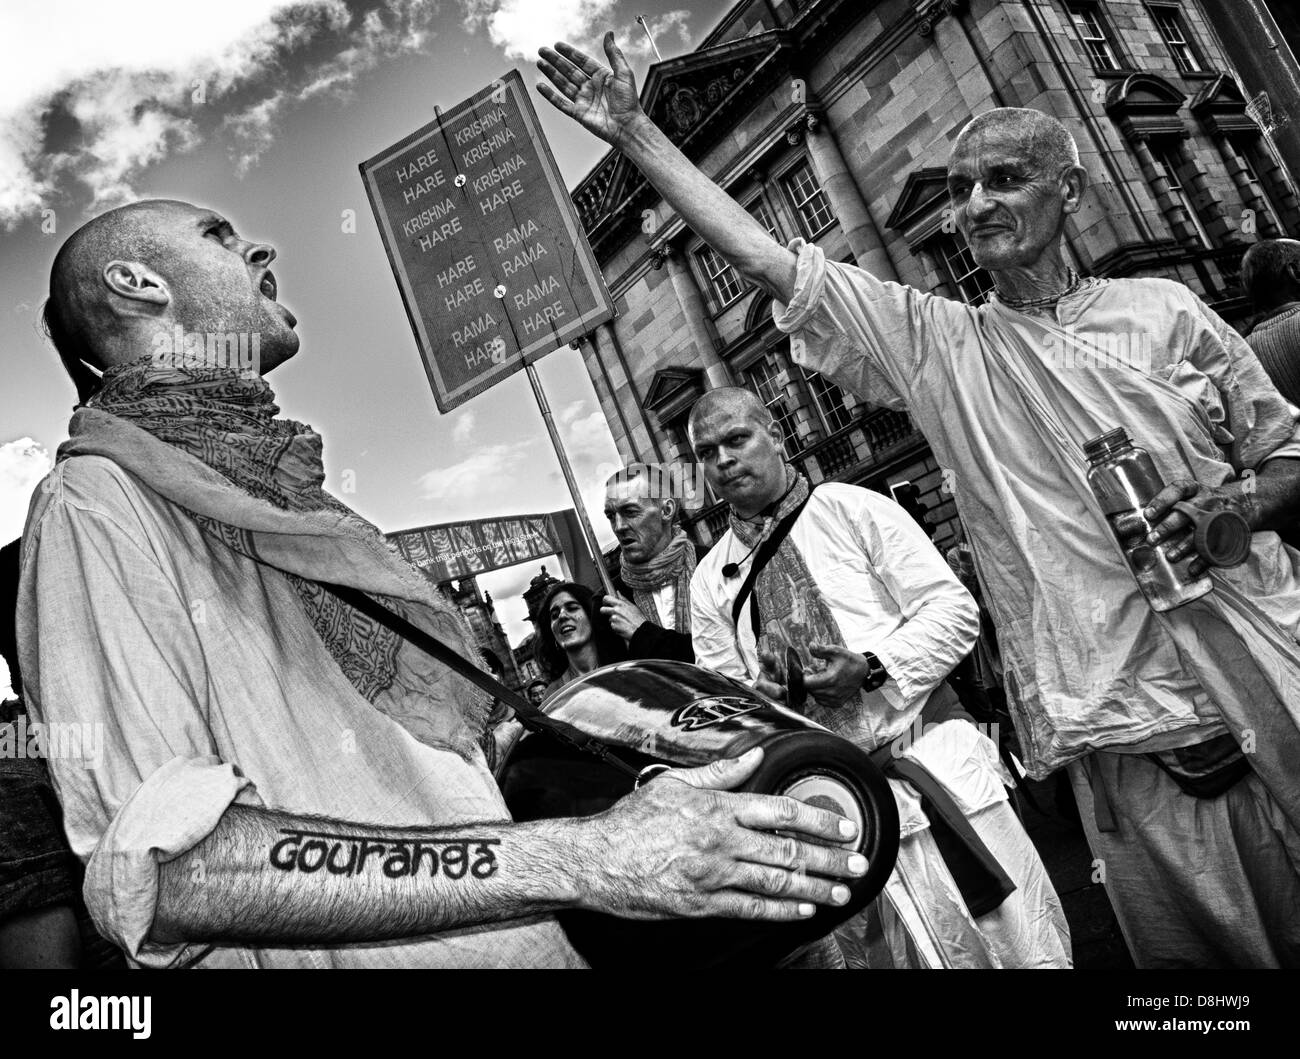 Krishnas,mono,monochrome,B/W,Black,White,sing,singing,in,the,street,making,people,ppl,High,St,Edinburgh,Scotland,August,festival,time,message,of,love,shaved,head,heads,capital,city,cities,tat,tattoo,gotonysmith,gotonysmith,Buy Pictures of,Buy Images Of